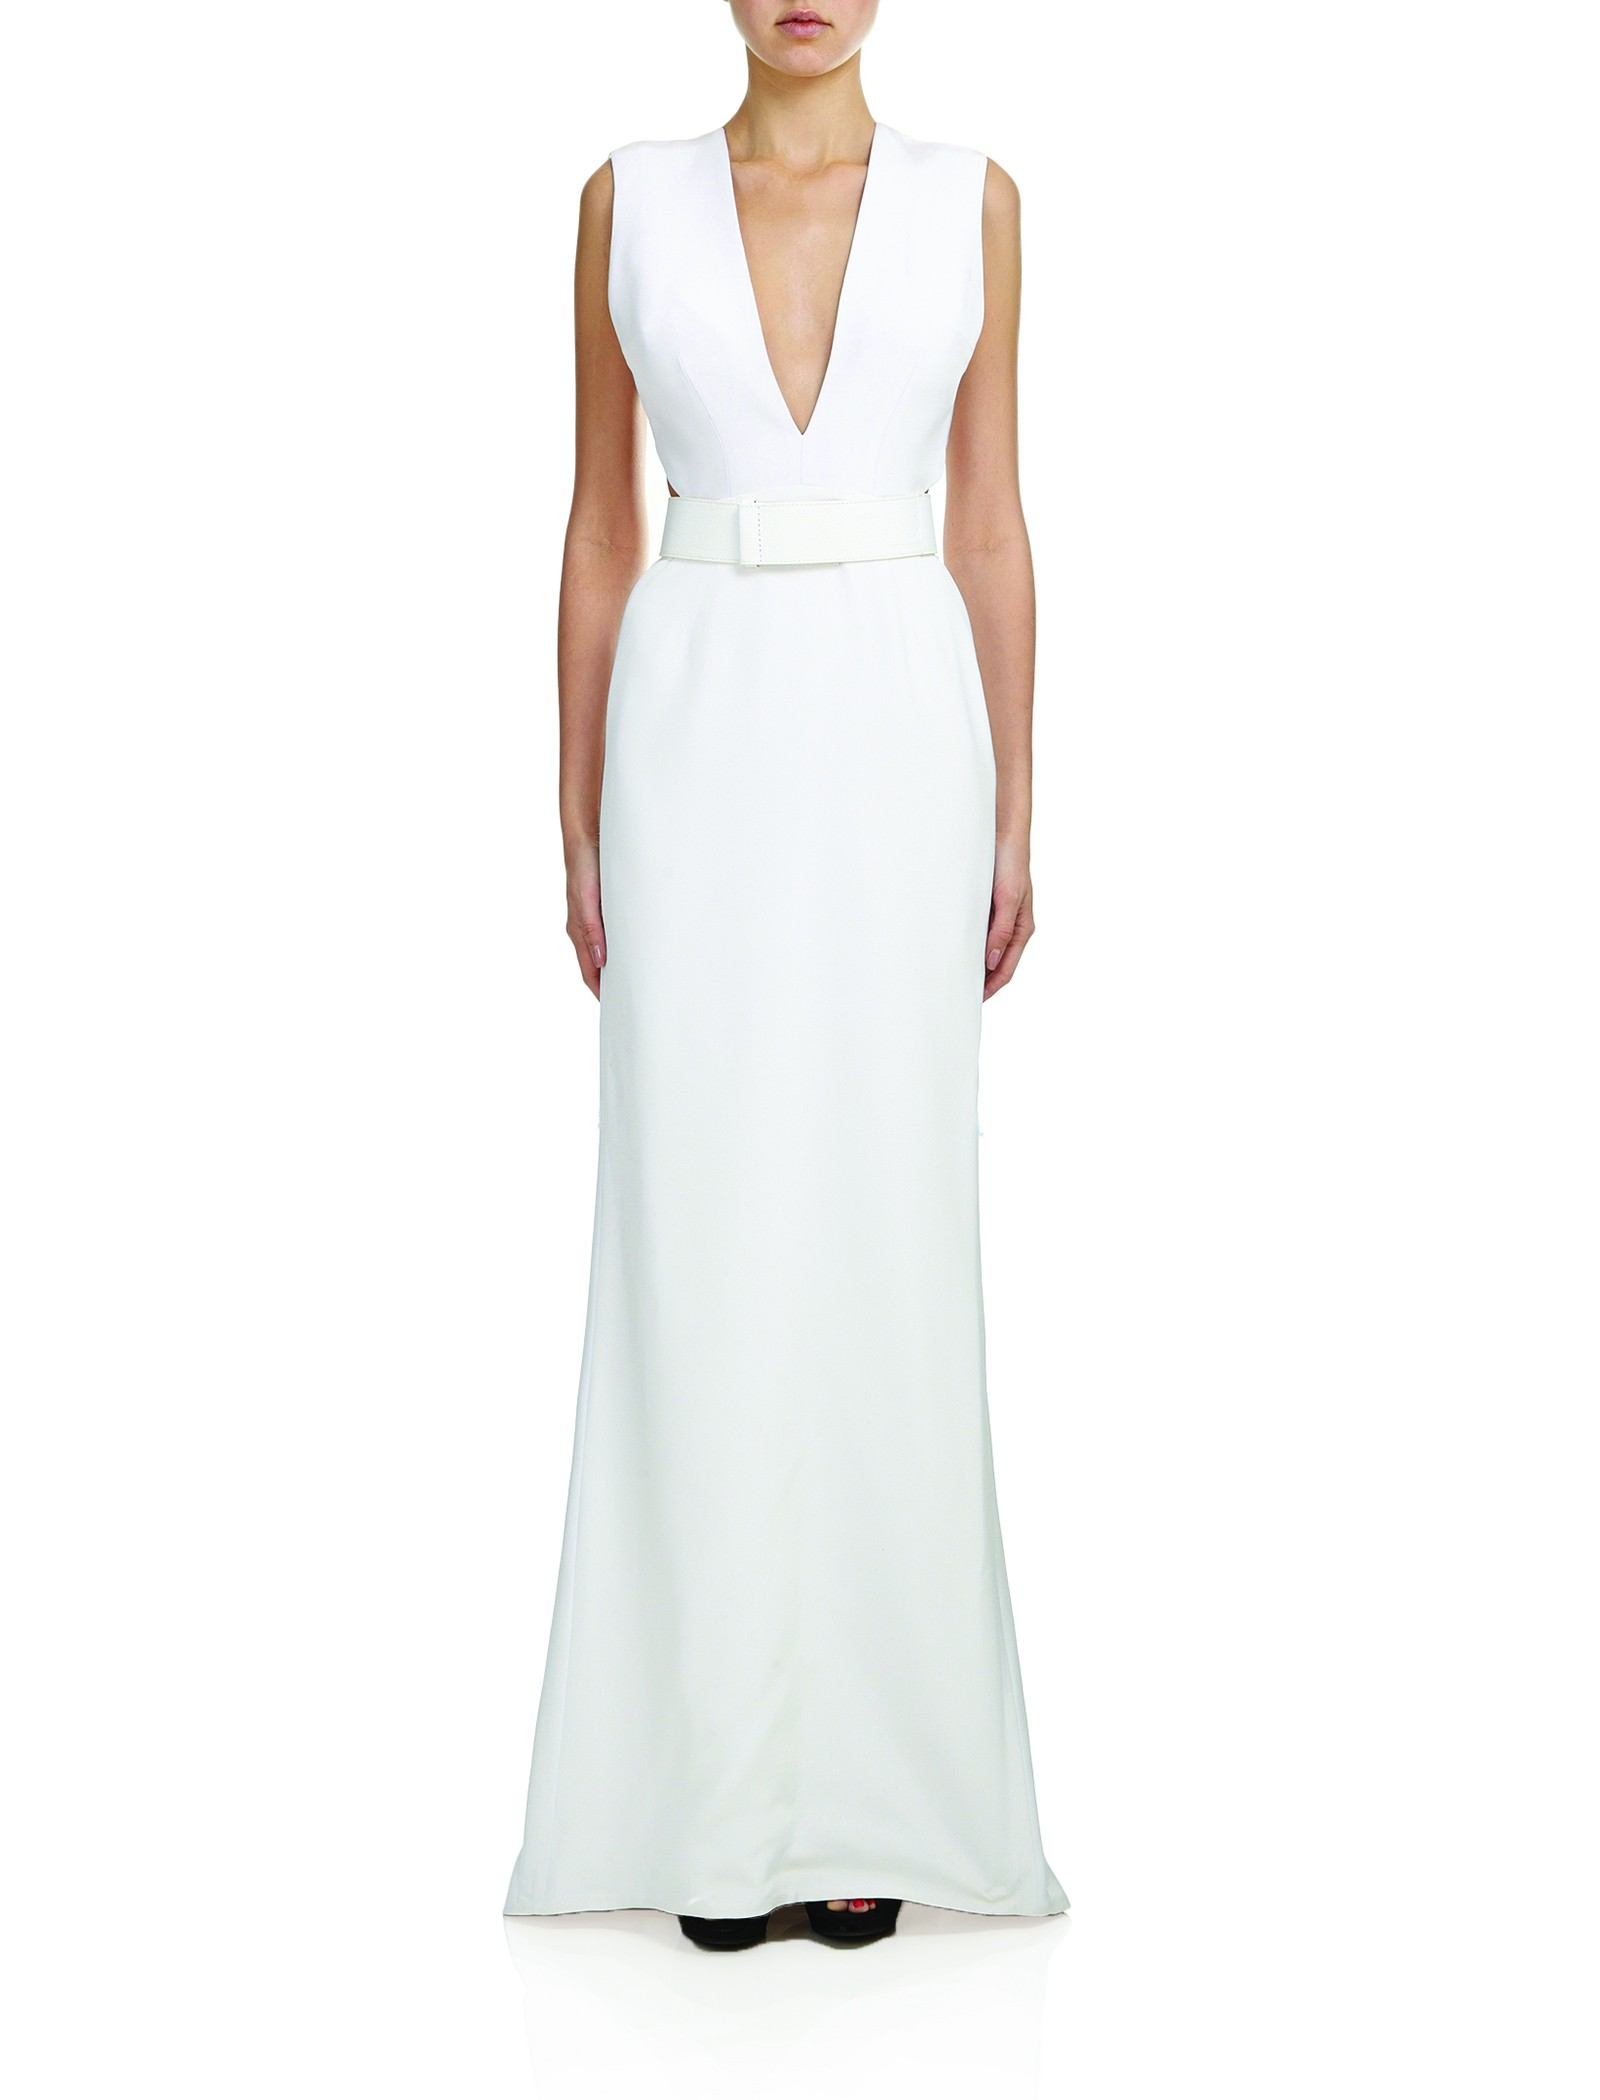 PLY SILK CREPE DRESS in Optic byKaufmanFranco at OWEN NYC